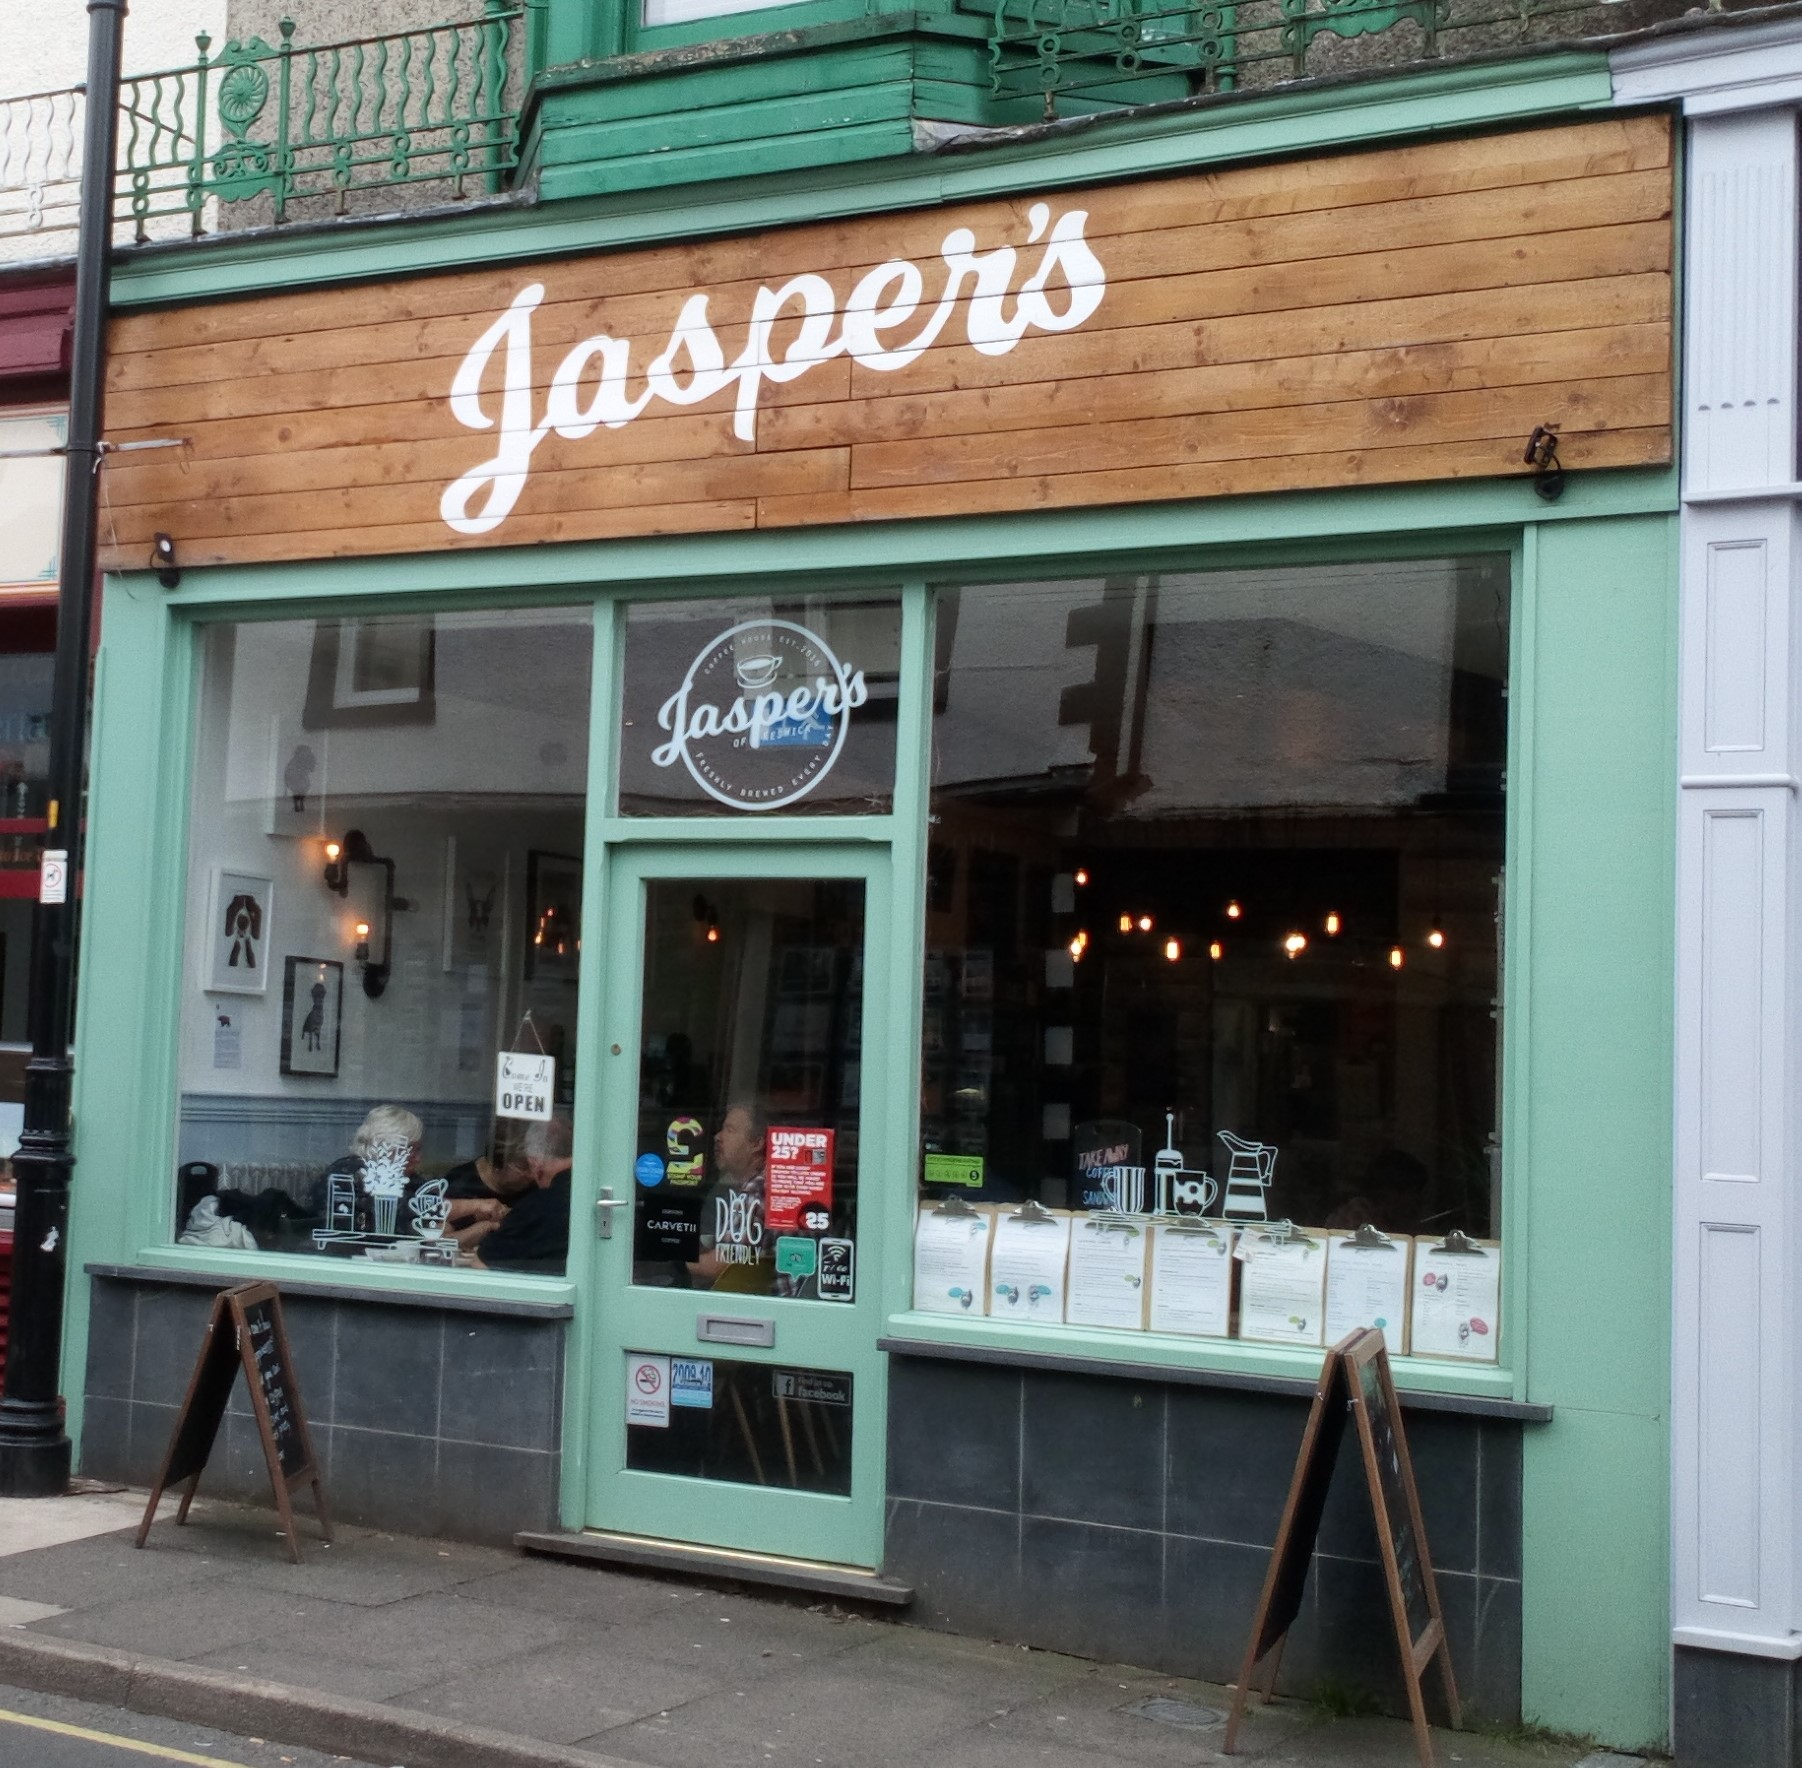 Jasper's   At Jasper's we believe we are the most dog friendly coffee shop in Keswick, specialising in Carvetti Coffee, loose leaf tea, smoothies, milkshakes and drip brewed iced coffee. We offer breakfasts, sandwiches, pittas, homemade cakes, fresh scones with jam and clotted cream. We also sell an extensive range of gluten free, vegetarian and vegan options. A takeaway menu is available; why not ring ahead and pre-order from us.  www.facebook.com/jaspersofkeswick  20 Station Street, Keswick, CA12 5HF  017687 73366